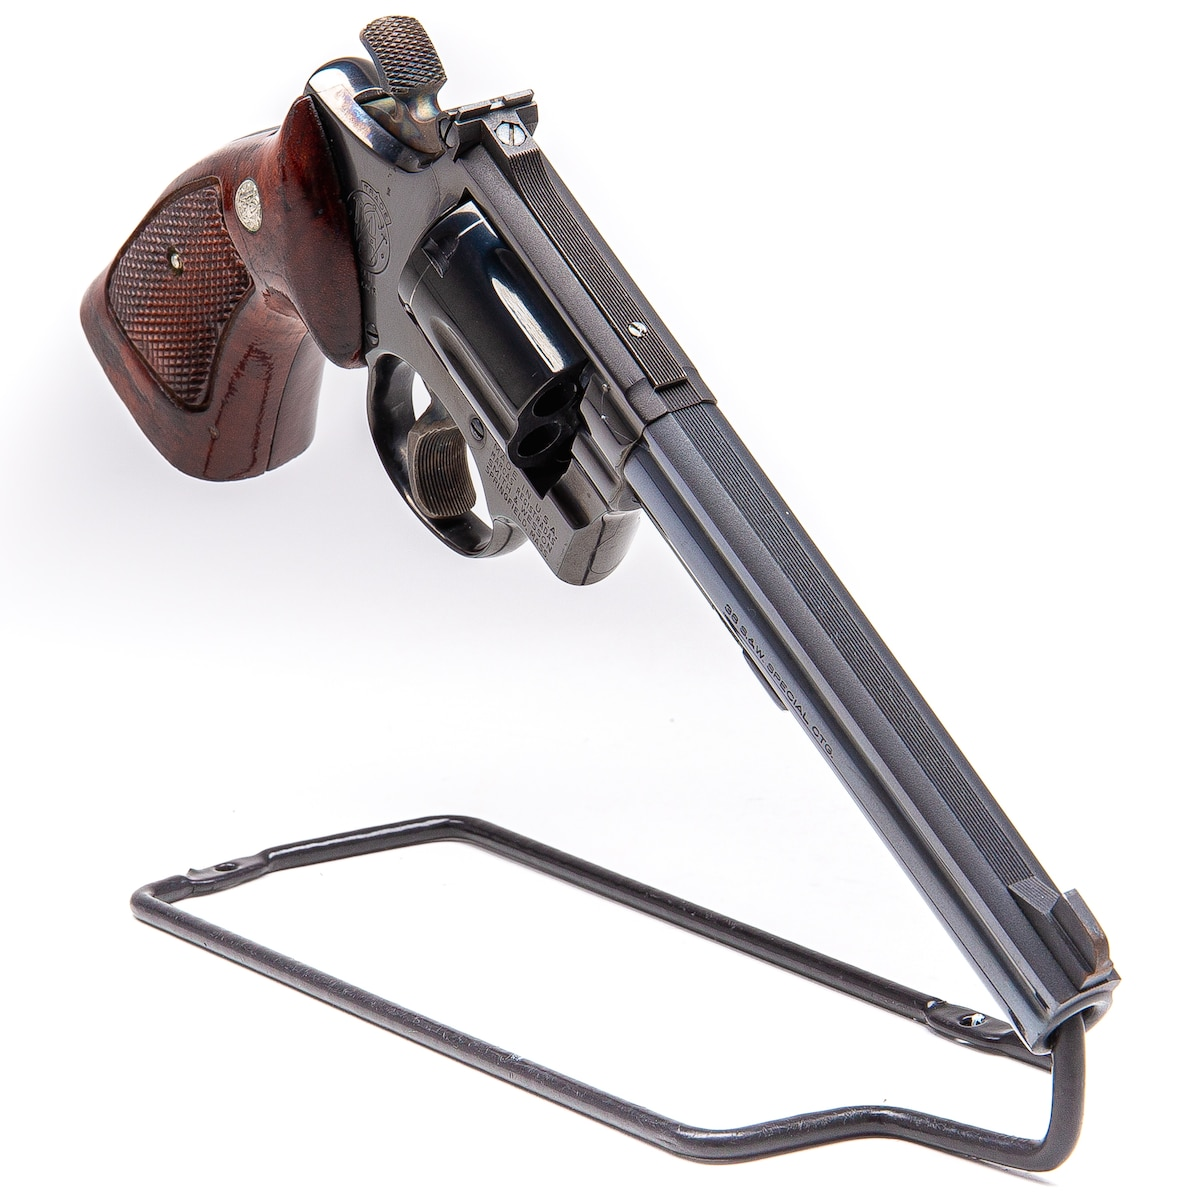 SMITH & WESSON MODEL 14-3